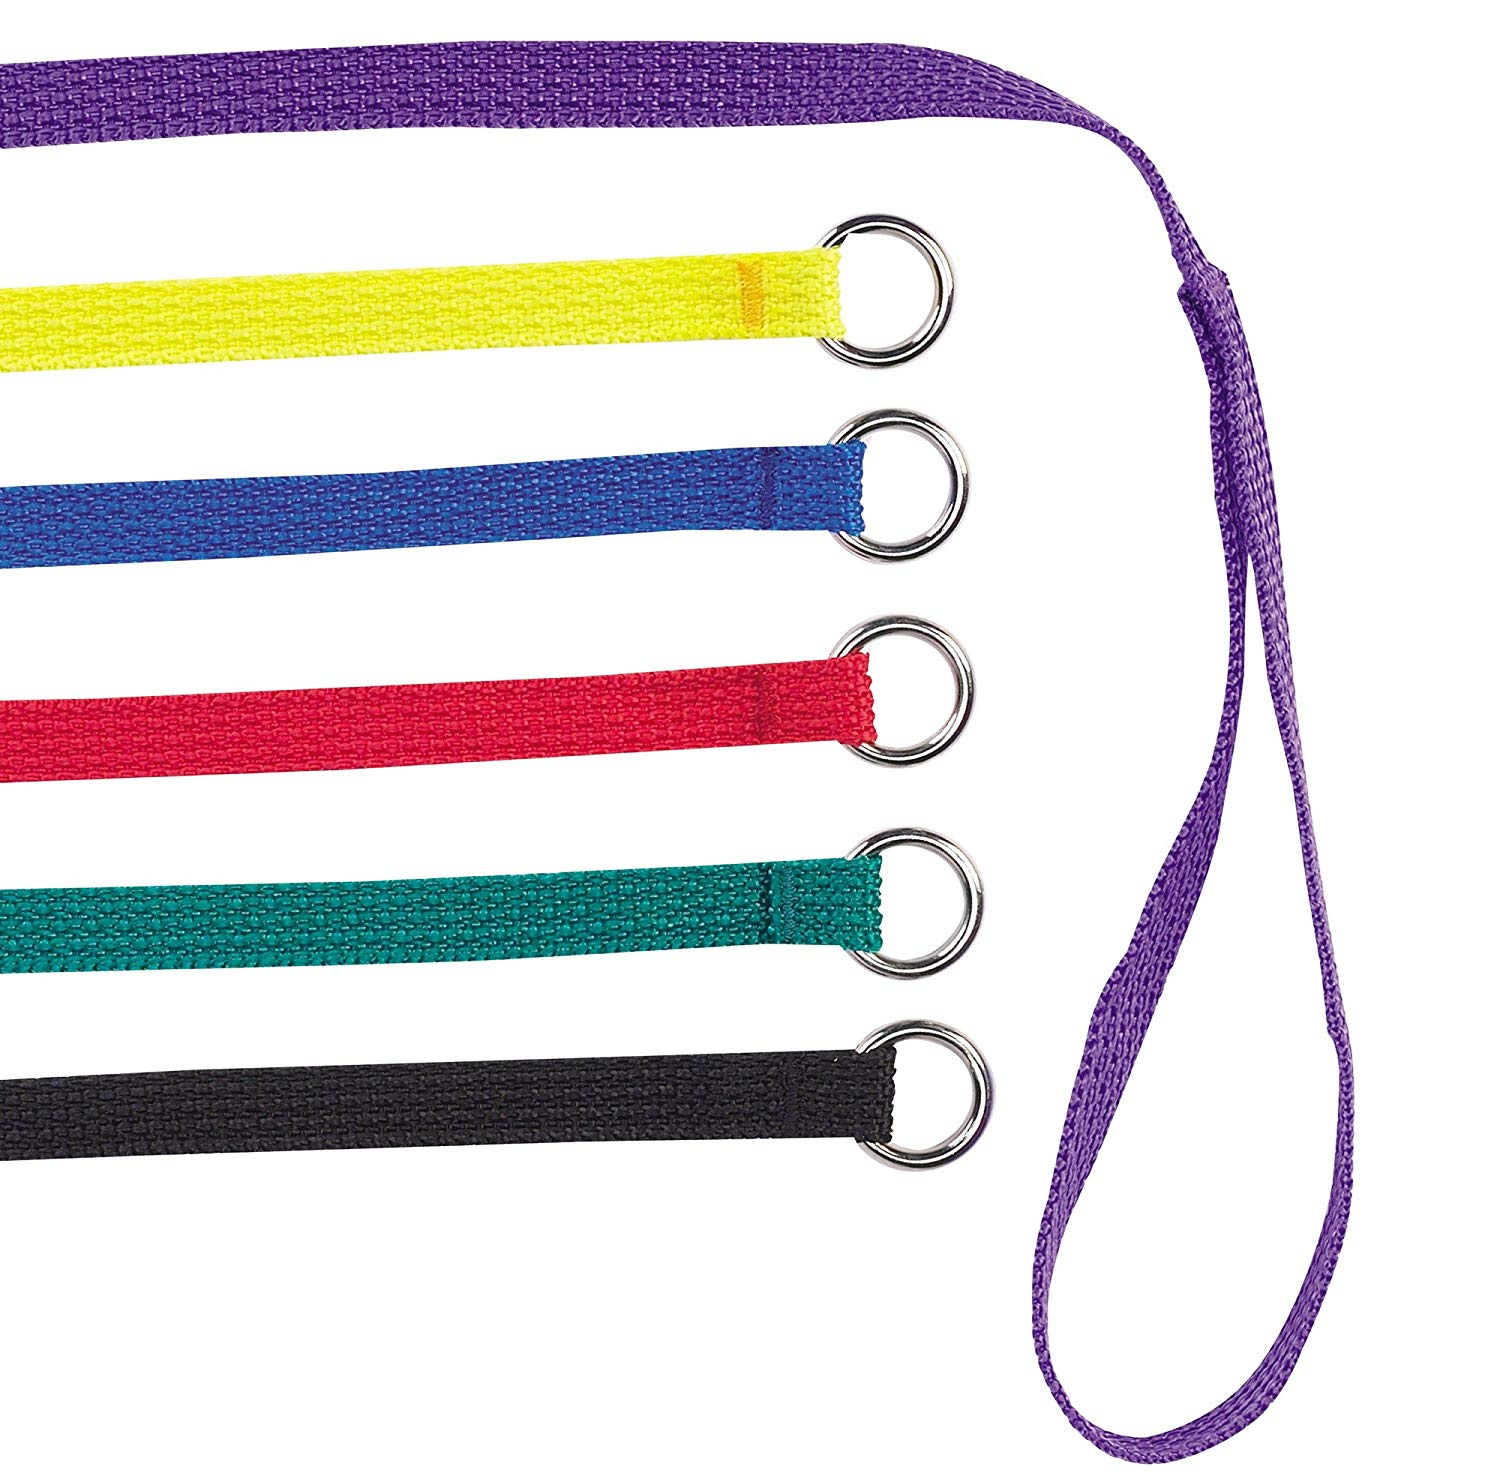 . 6' KENNEL LEAD / SLIP LEAD